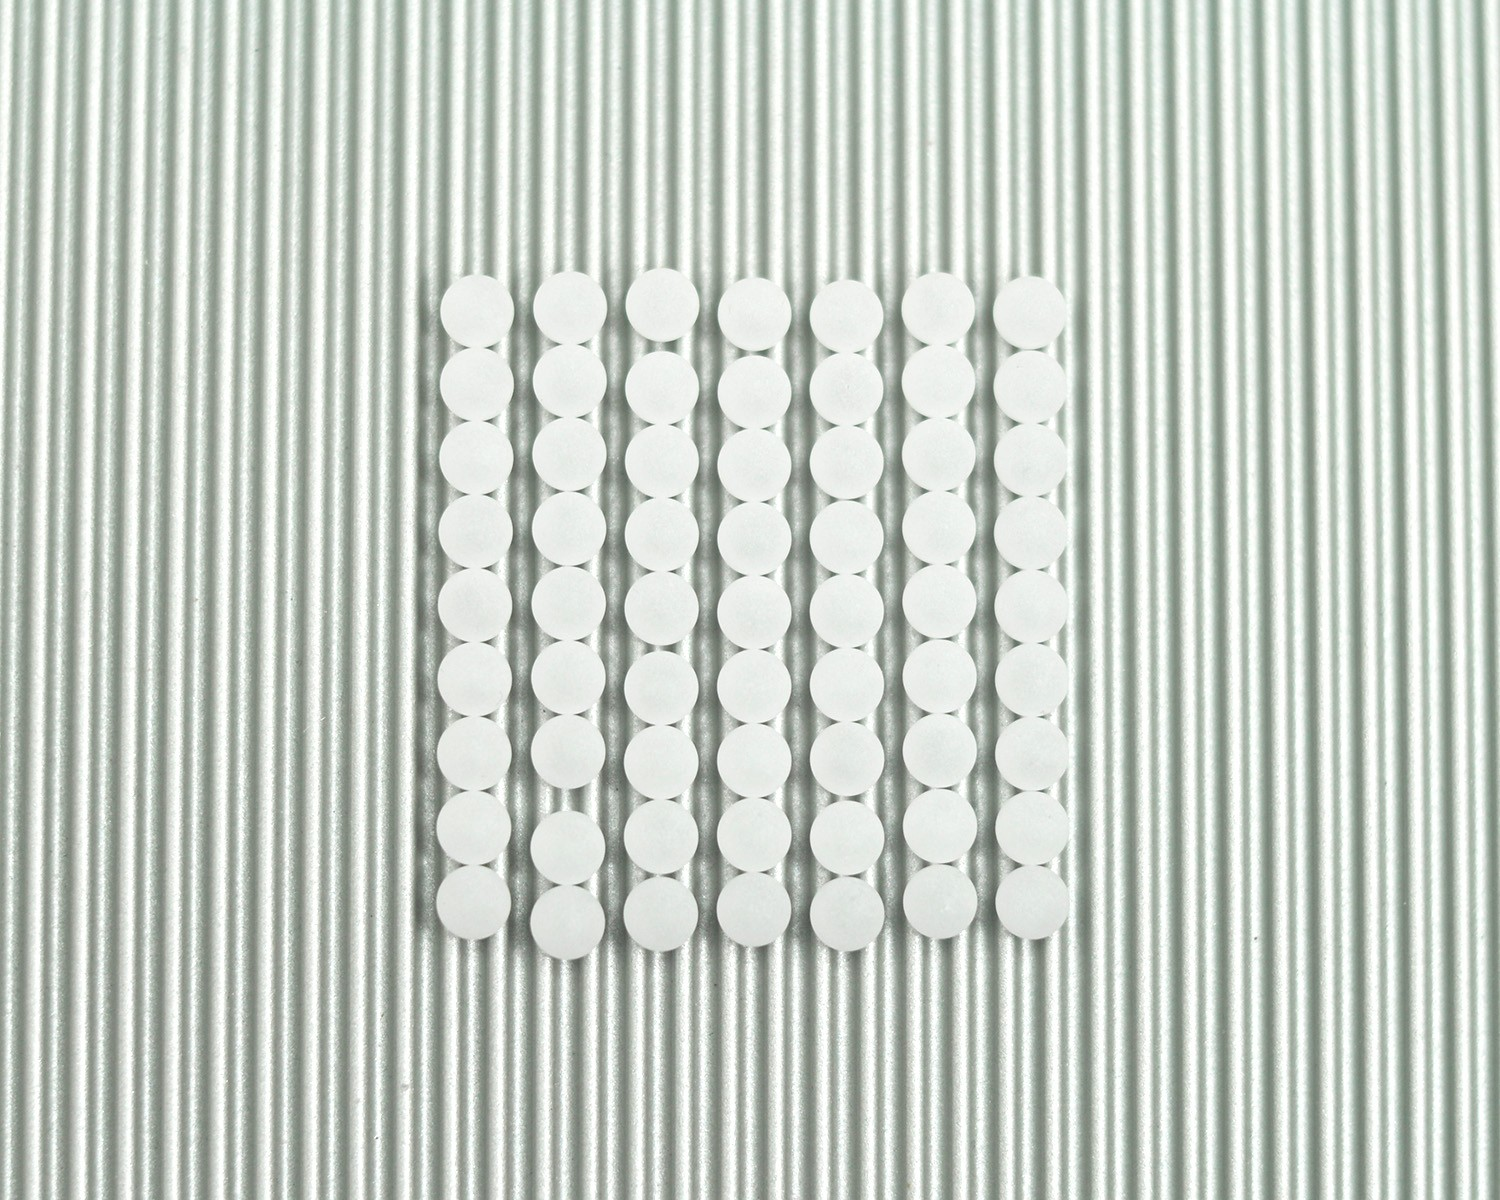 "Polyballs - Polystyrene, 1/4"" Diameter, for Biological Applications"